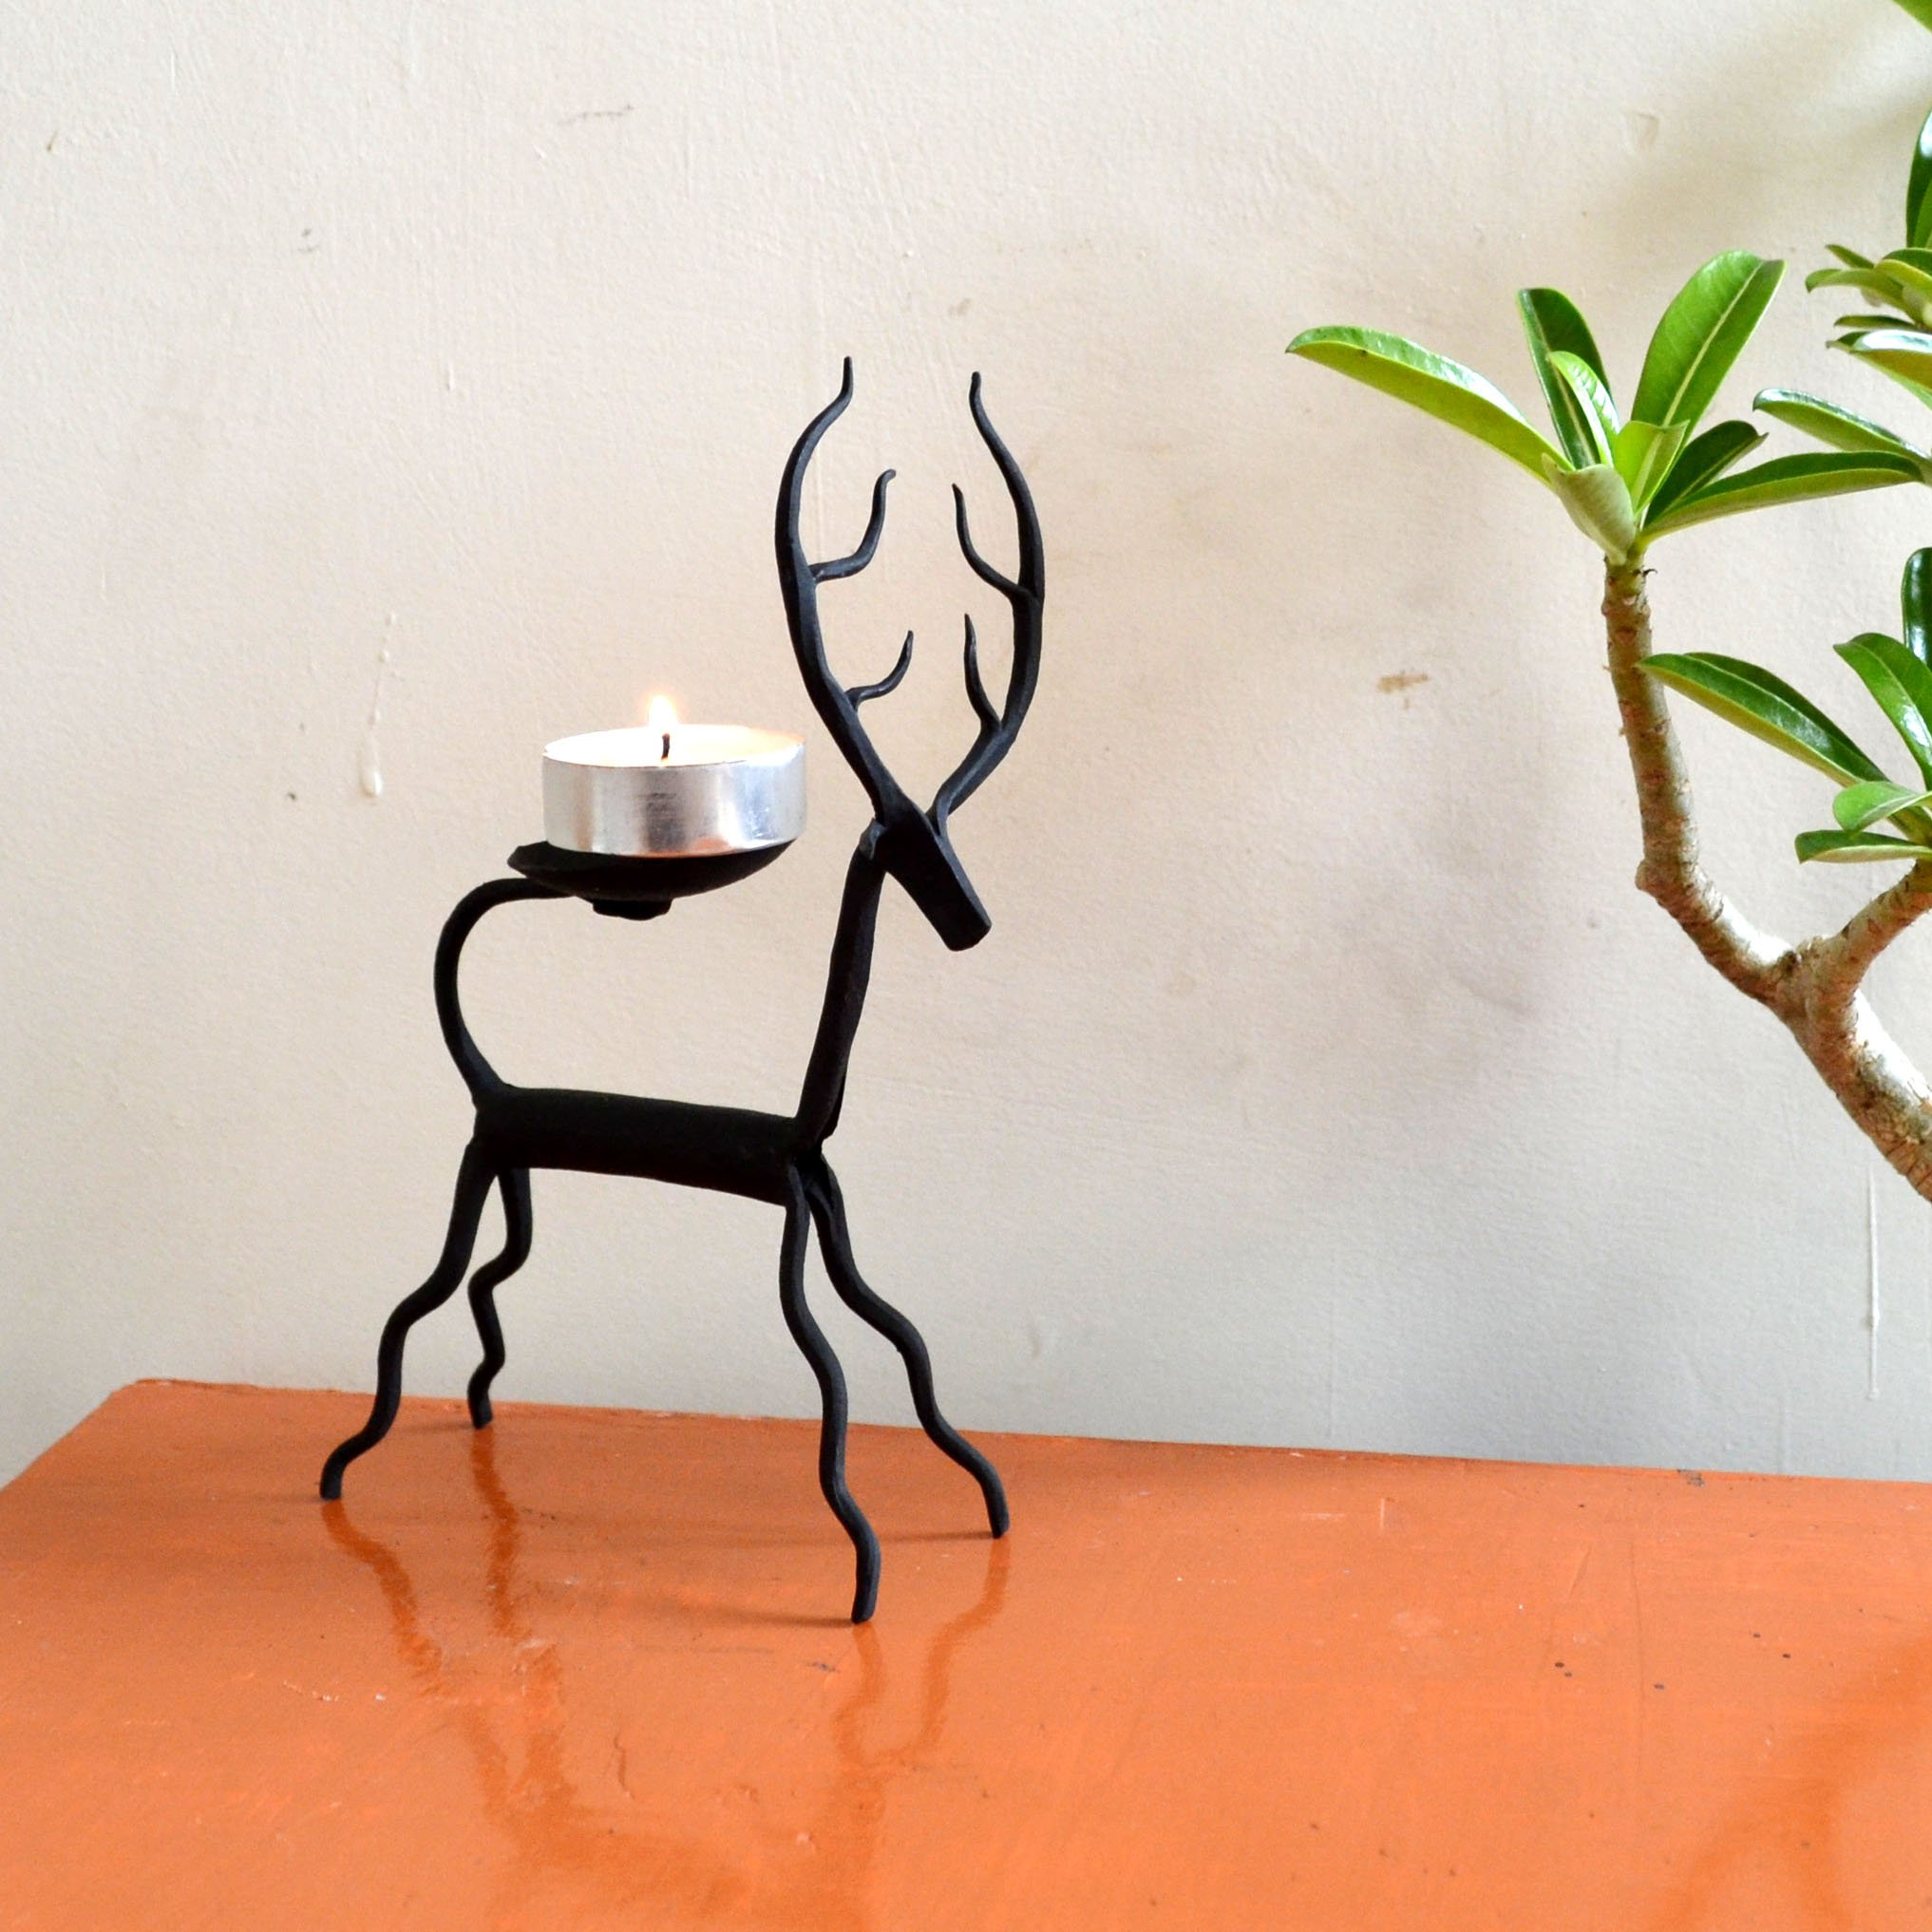 Chinhhari Arts, Indian Decorative Table Decor Deer Candle Stand Wrought Iron Handmade Accents